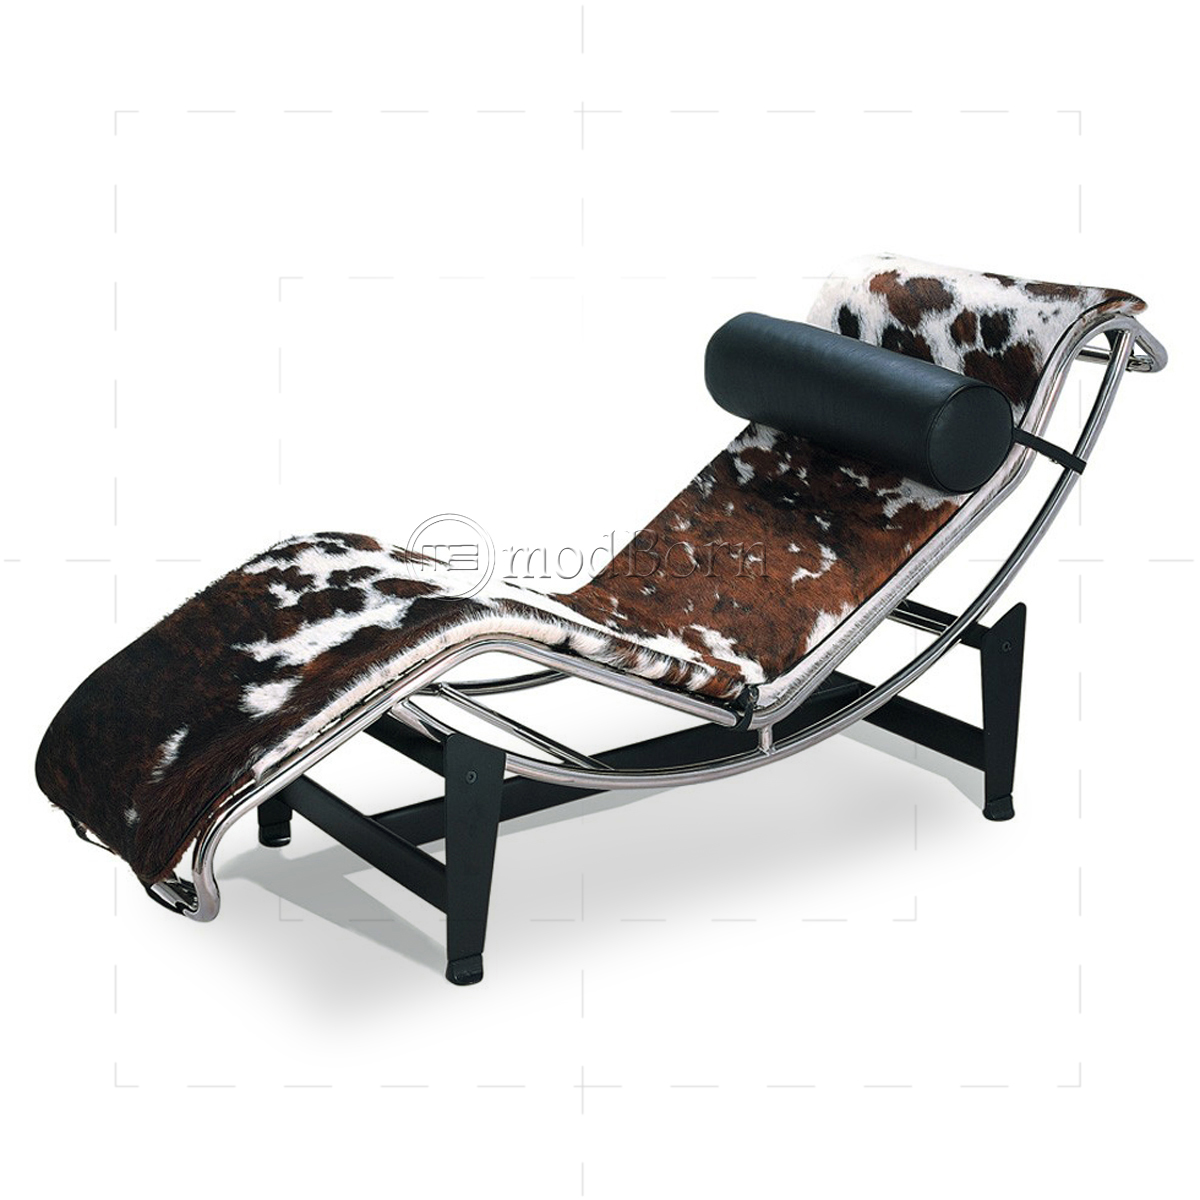 Le corbusier style lc4 chaise longue pony leather replica for Chaise longue le corbusier precio